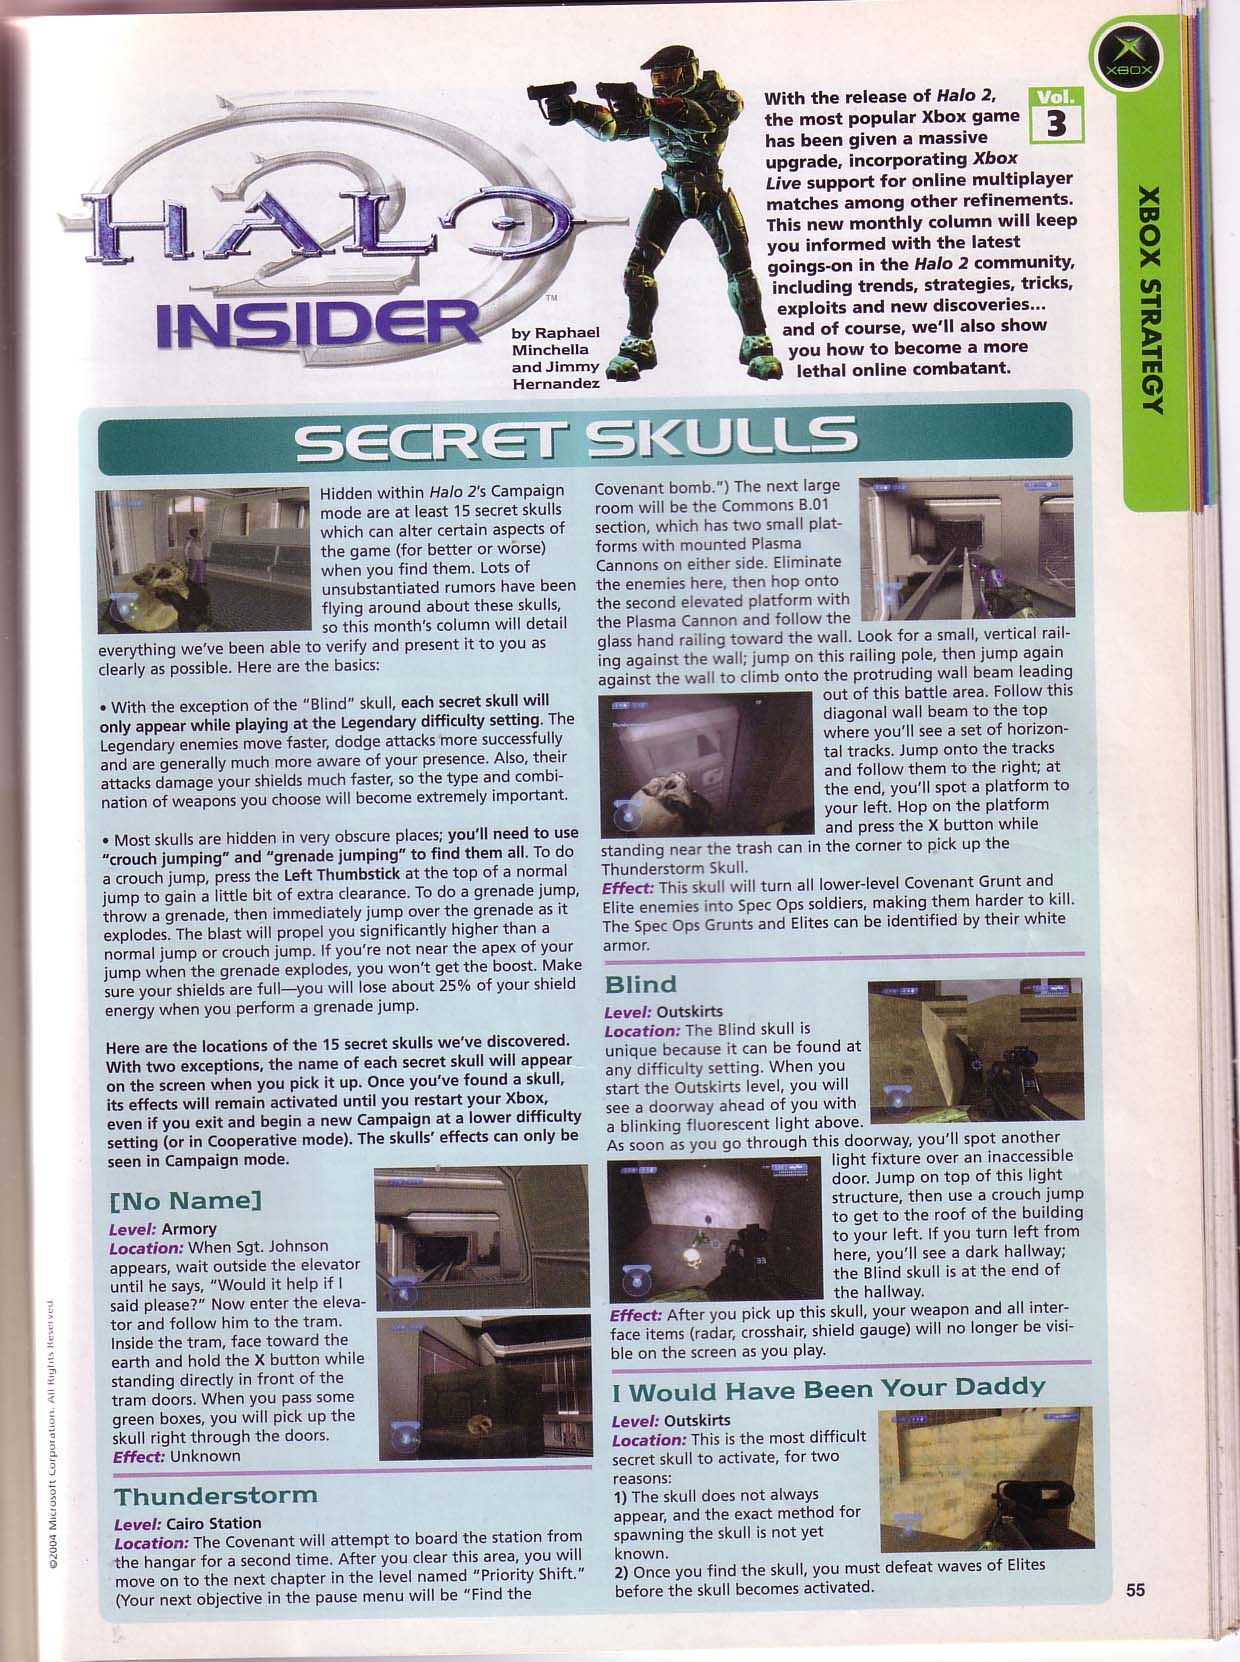 TipsandTricks_March_2005_Halo_pg1_Strategy.jpg